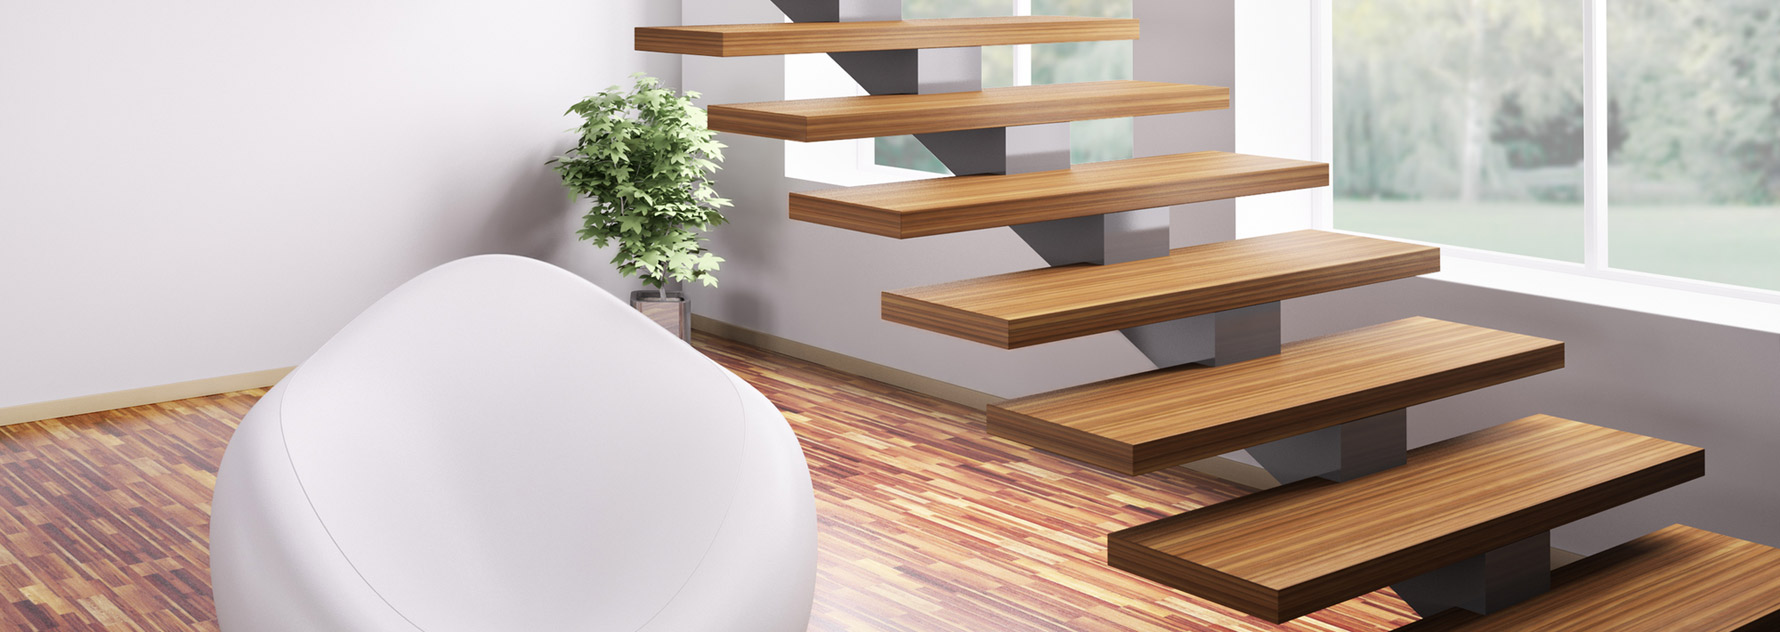 Depositphotos 3694086 Stock Photo Armchair And Staircase 3 1780x632k